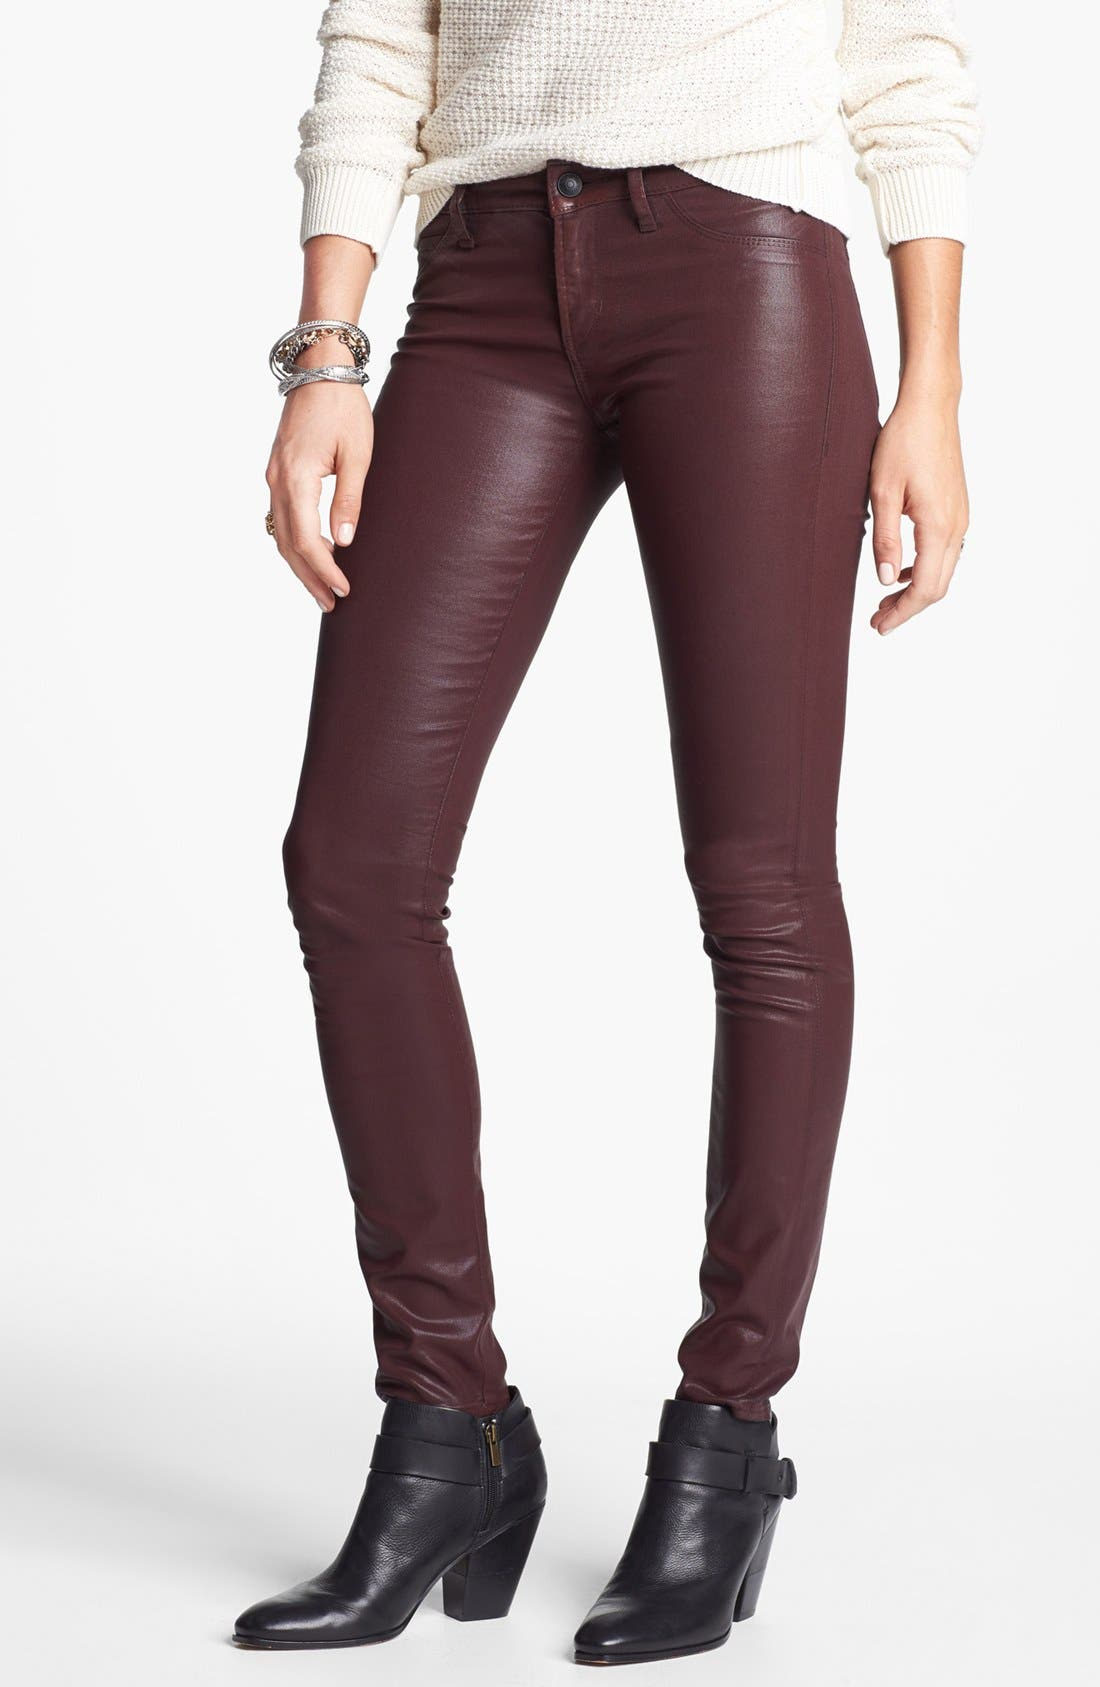 Alternate Image 1 Selected - Articles of Society 'Mya' Coated Skinny Jeans (Ox Blood) (Online Only)